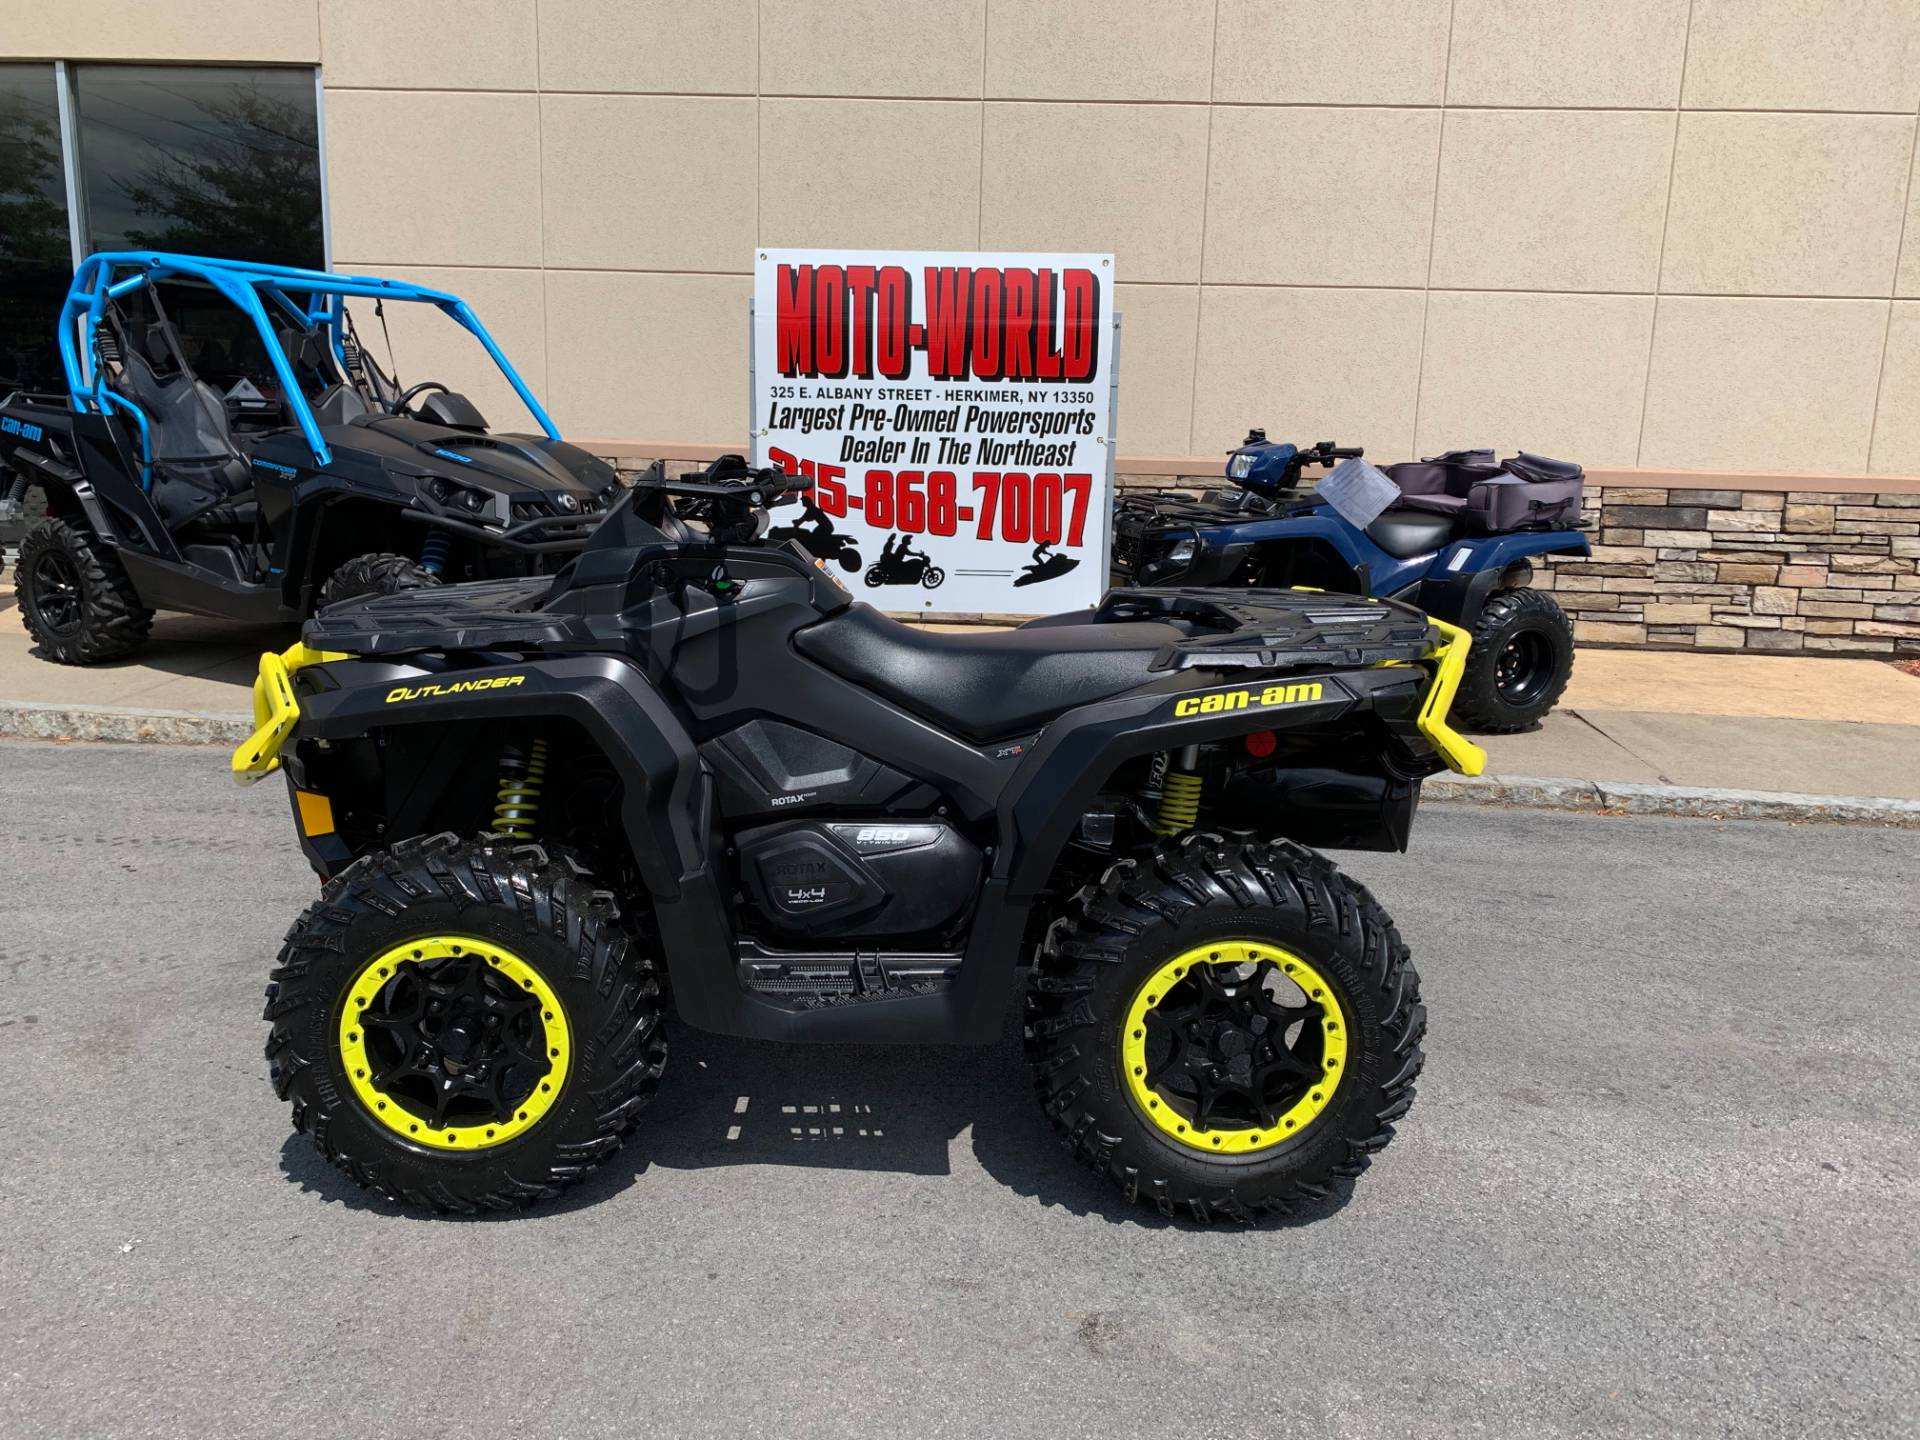 2019 Can-Am Outlander XT-P 850 in Herkimer, New York - Photo 1